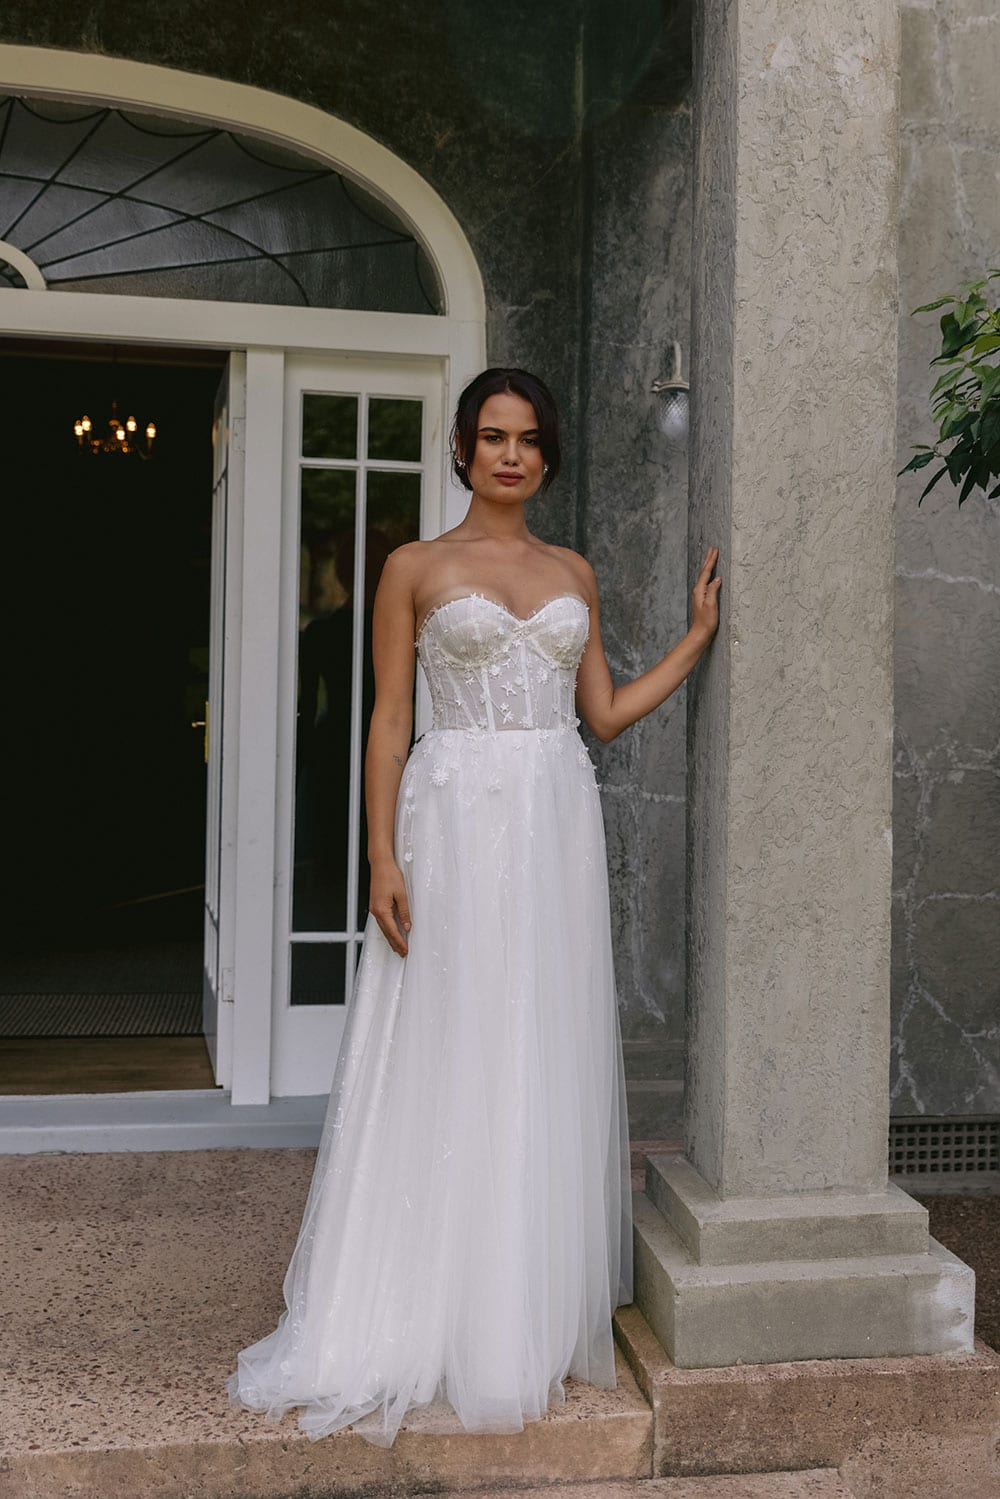 Hikari Wedding gown from Vinka Design - This modern wedding dress has a structured semi-sheer bodice with hand-appliqued lace of stars and flowers. The skirt is made with multiple layers of soft tulle. Model wearing gown in grand entrance to old building in Clevedon, near Auckland.